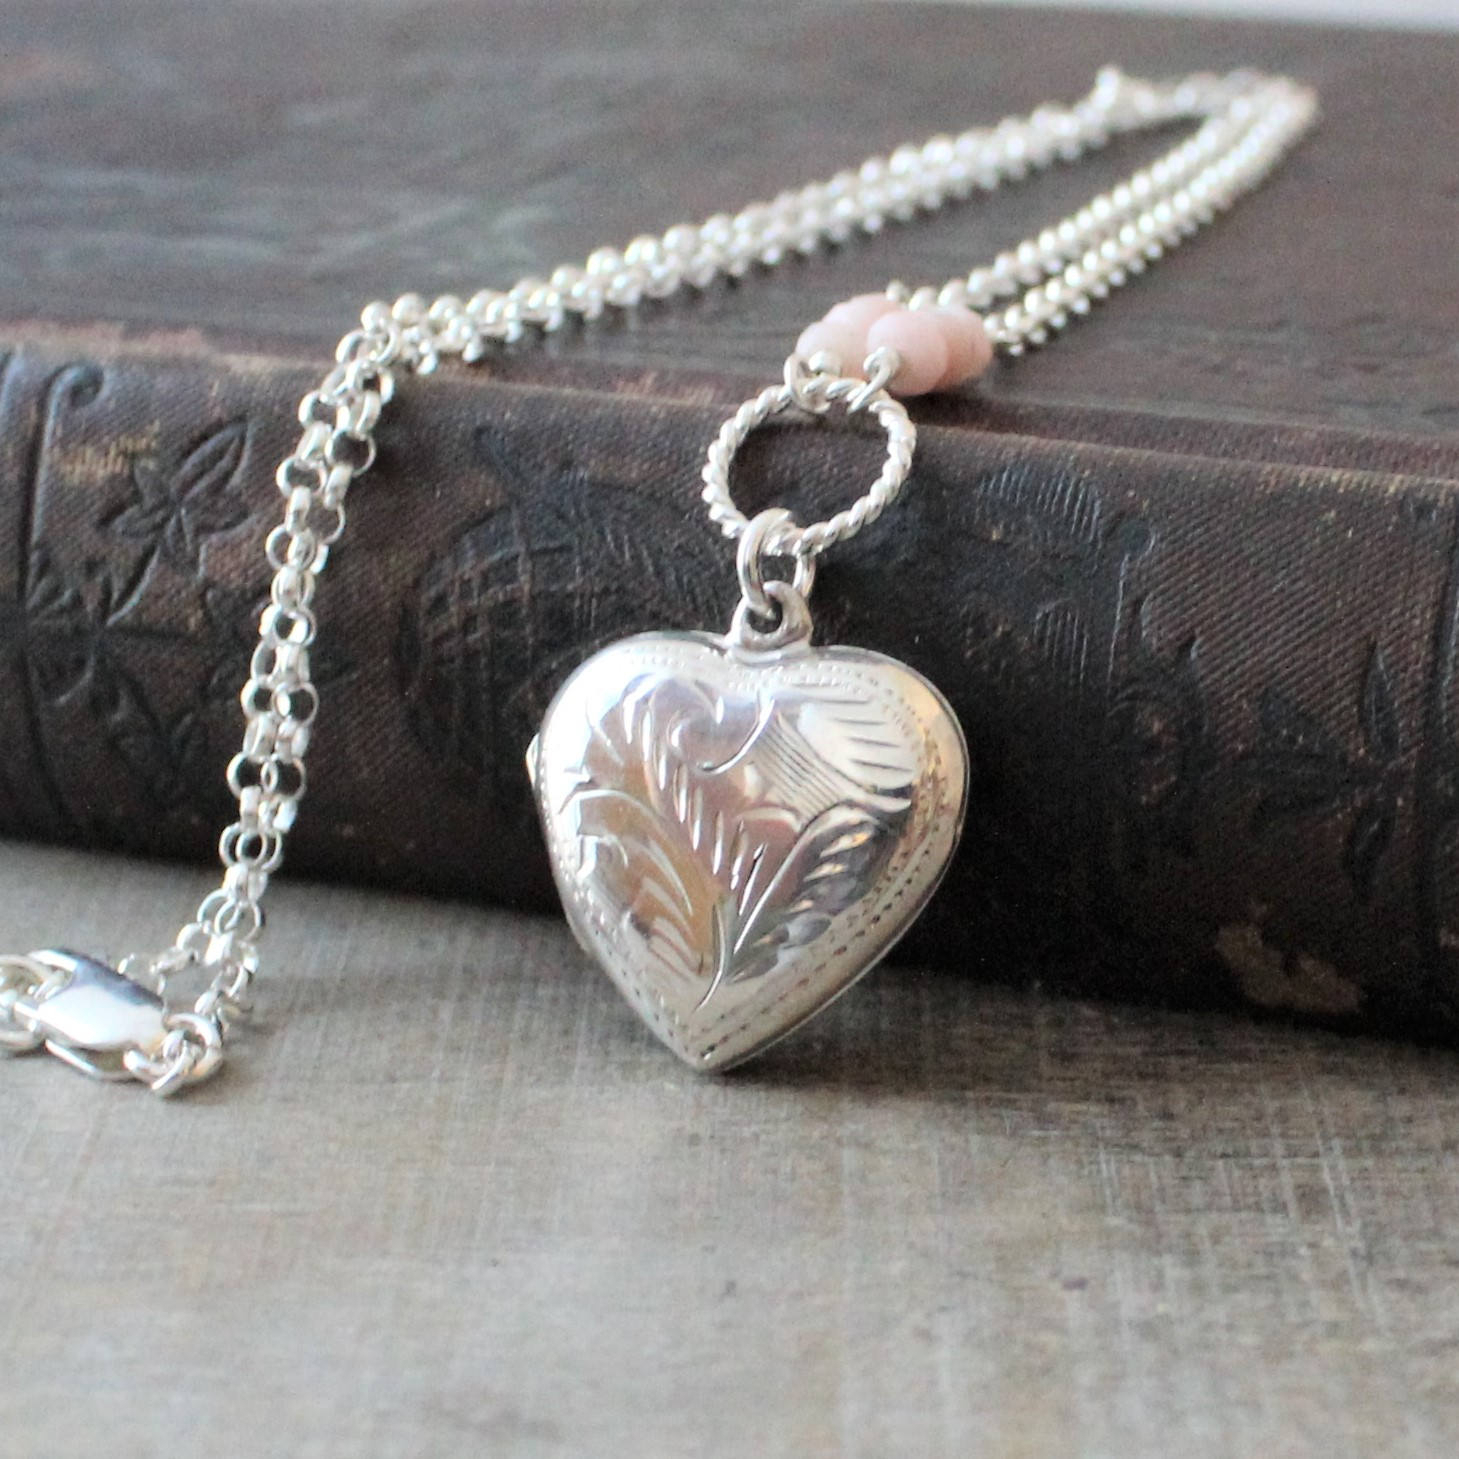 October Birthstone Locket, Pink Opal Locket, Photo Locket Necklace, Sterling Silver Locket, Silver Heart Locket, Picture Locket Pendant With Most Recent Pink October Birthstone Locket Element (View 15 of 25)